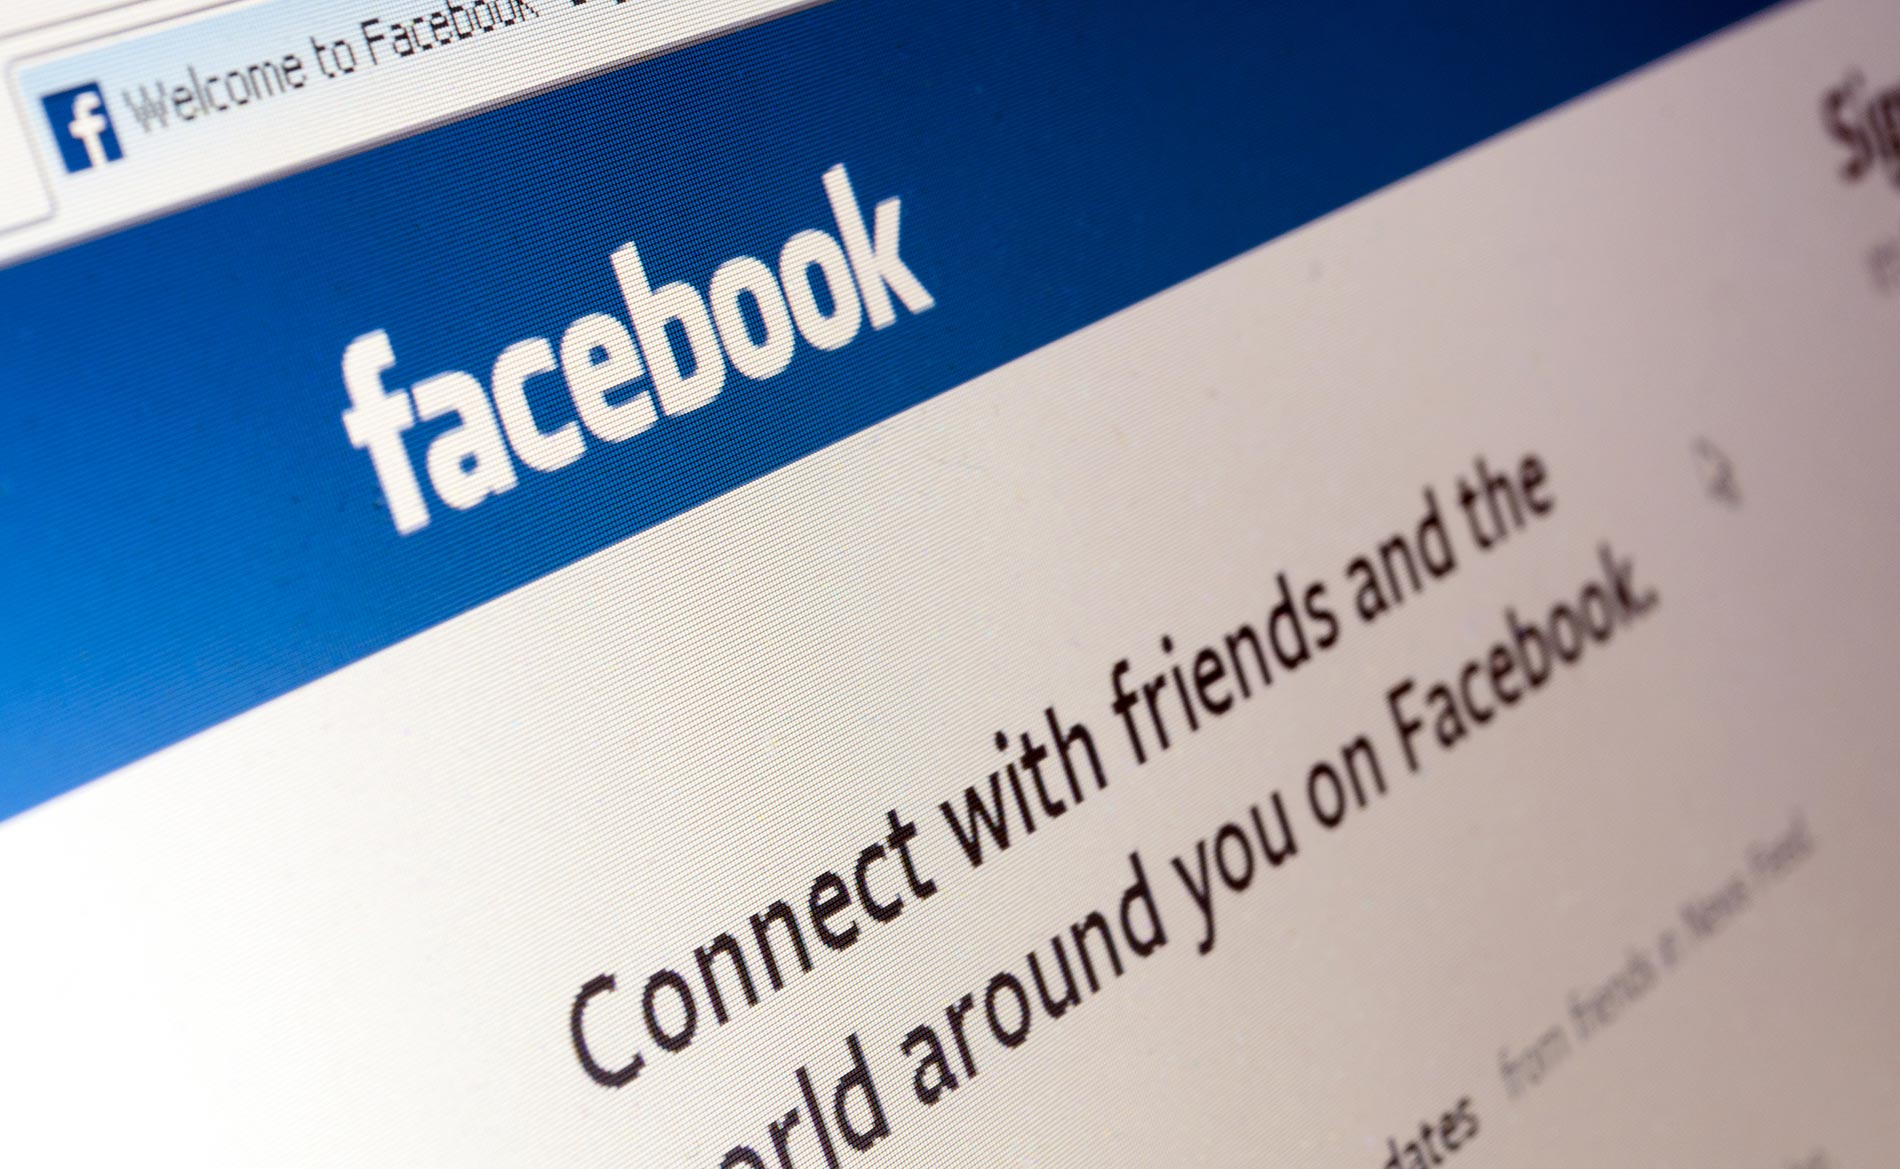 facebook-login-1 Facebook Algorithm Changes and Your Brand